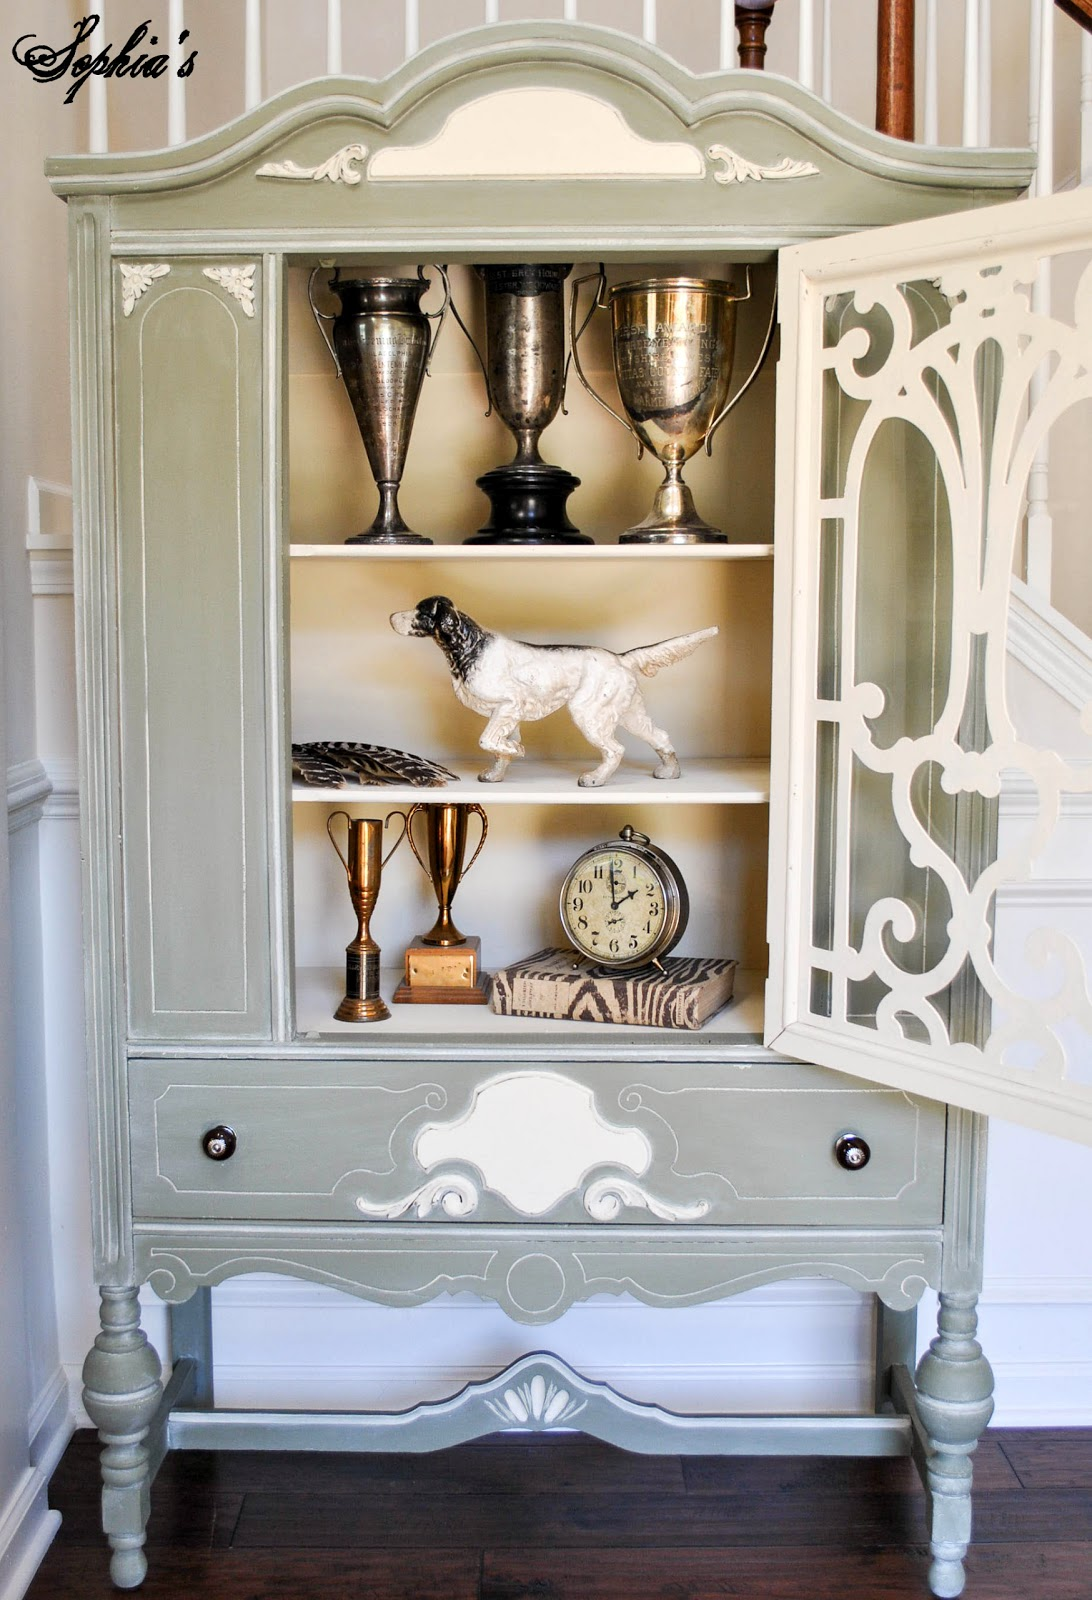 Sophia's: White-Glazed Chateau Grey Cabinet And Recent Finds